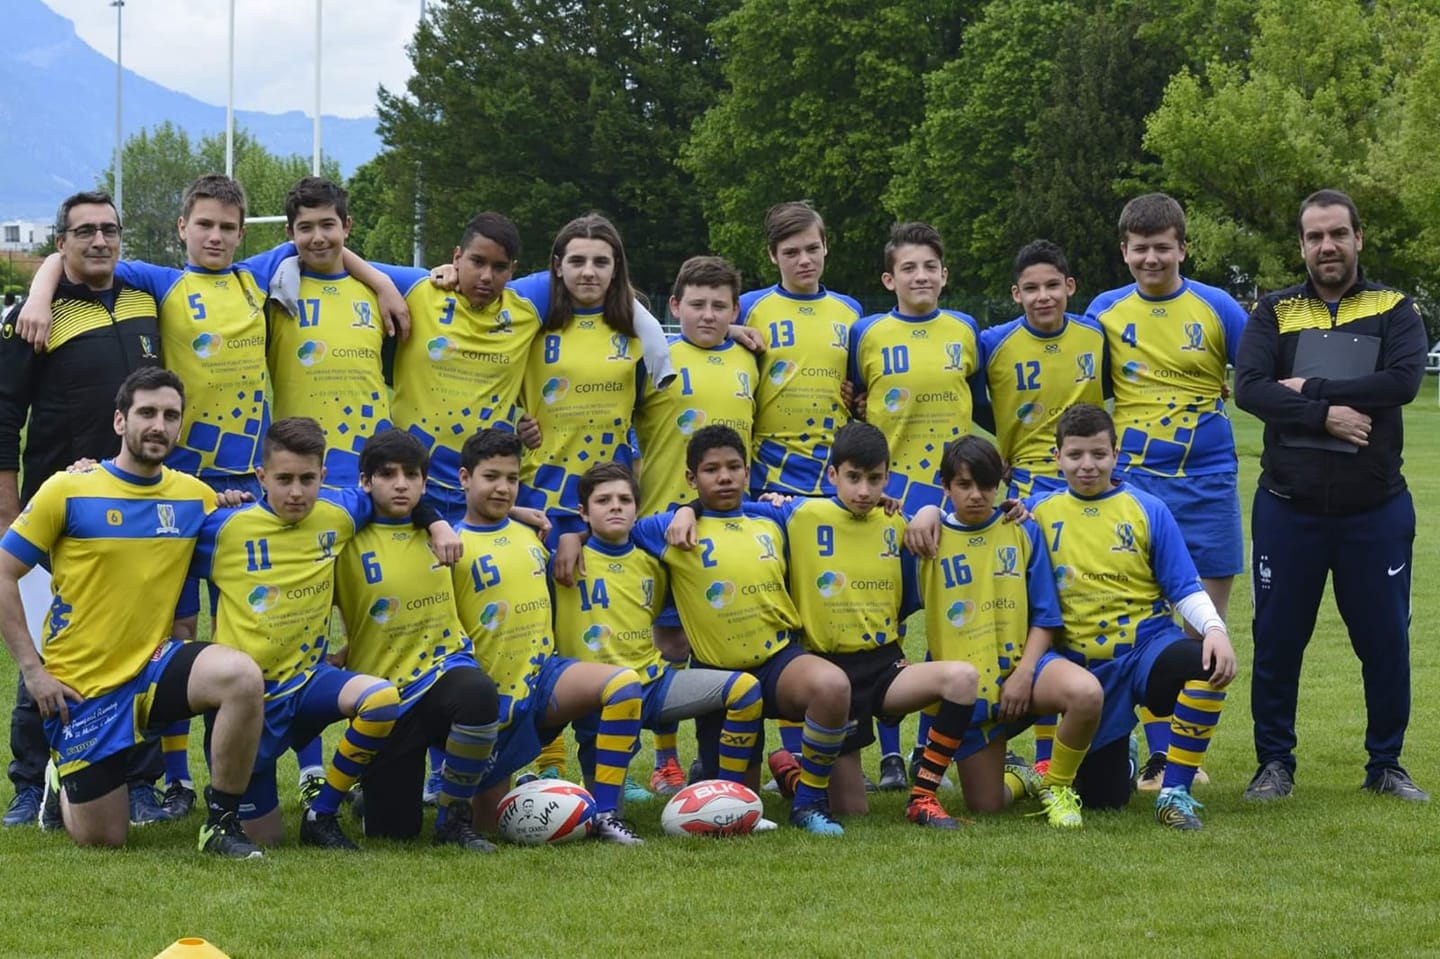 U14 Photo déquipe Mai 2019